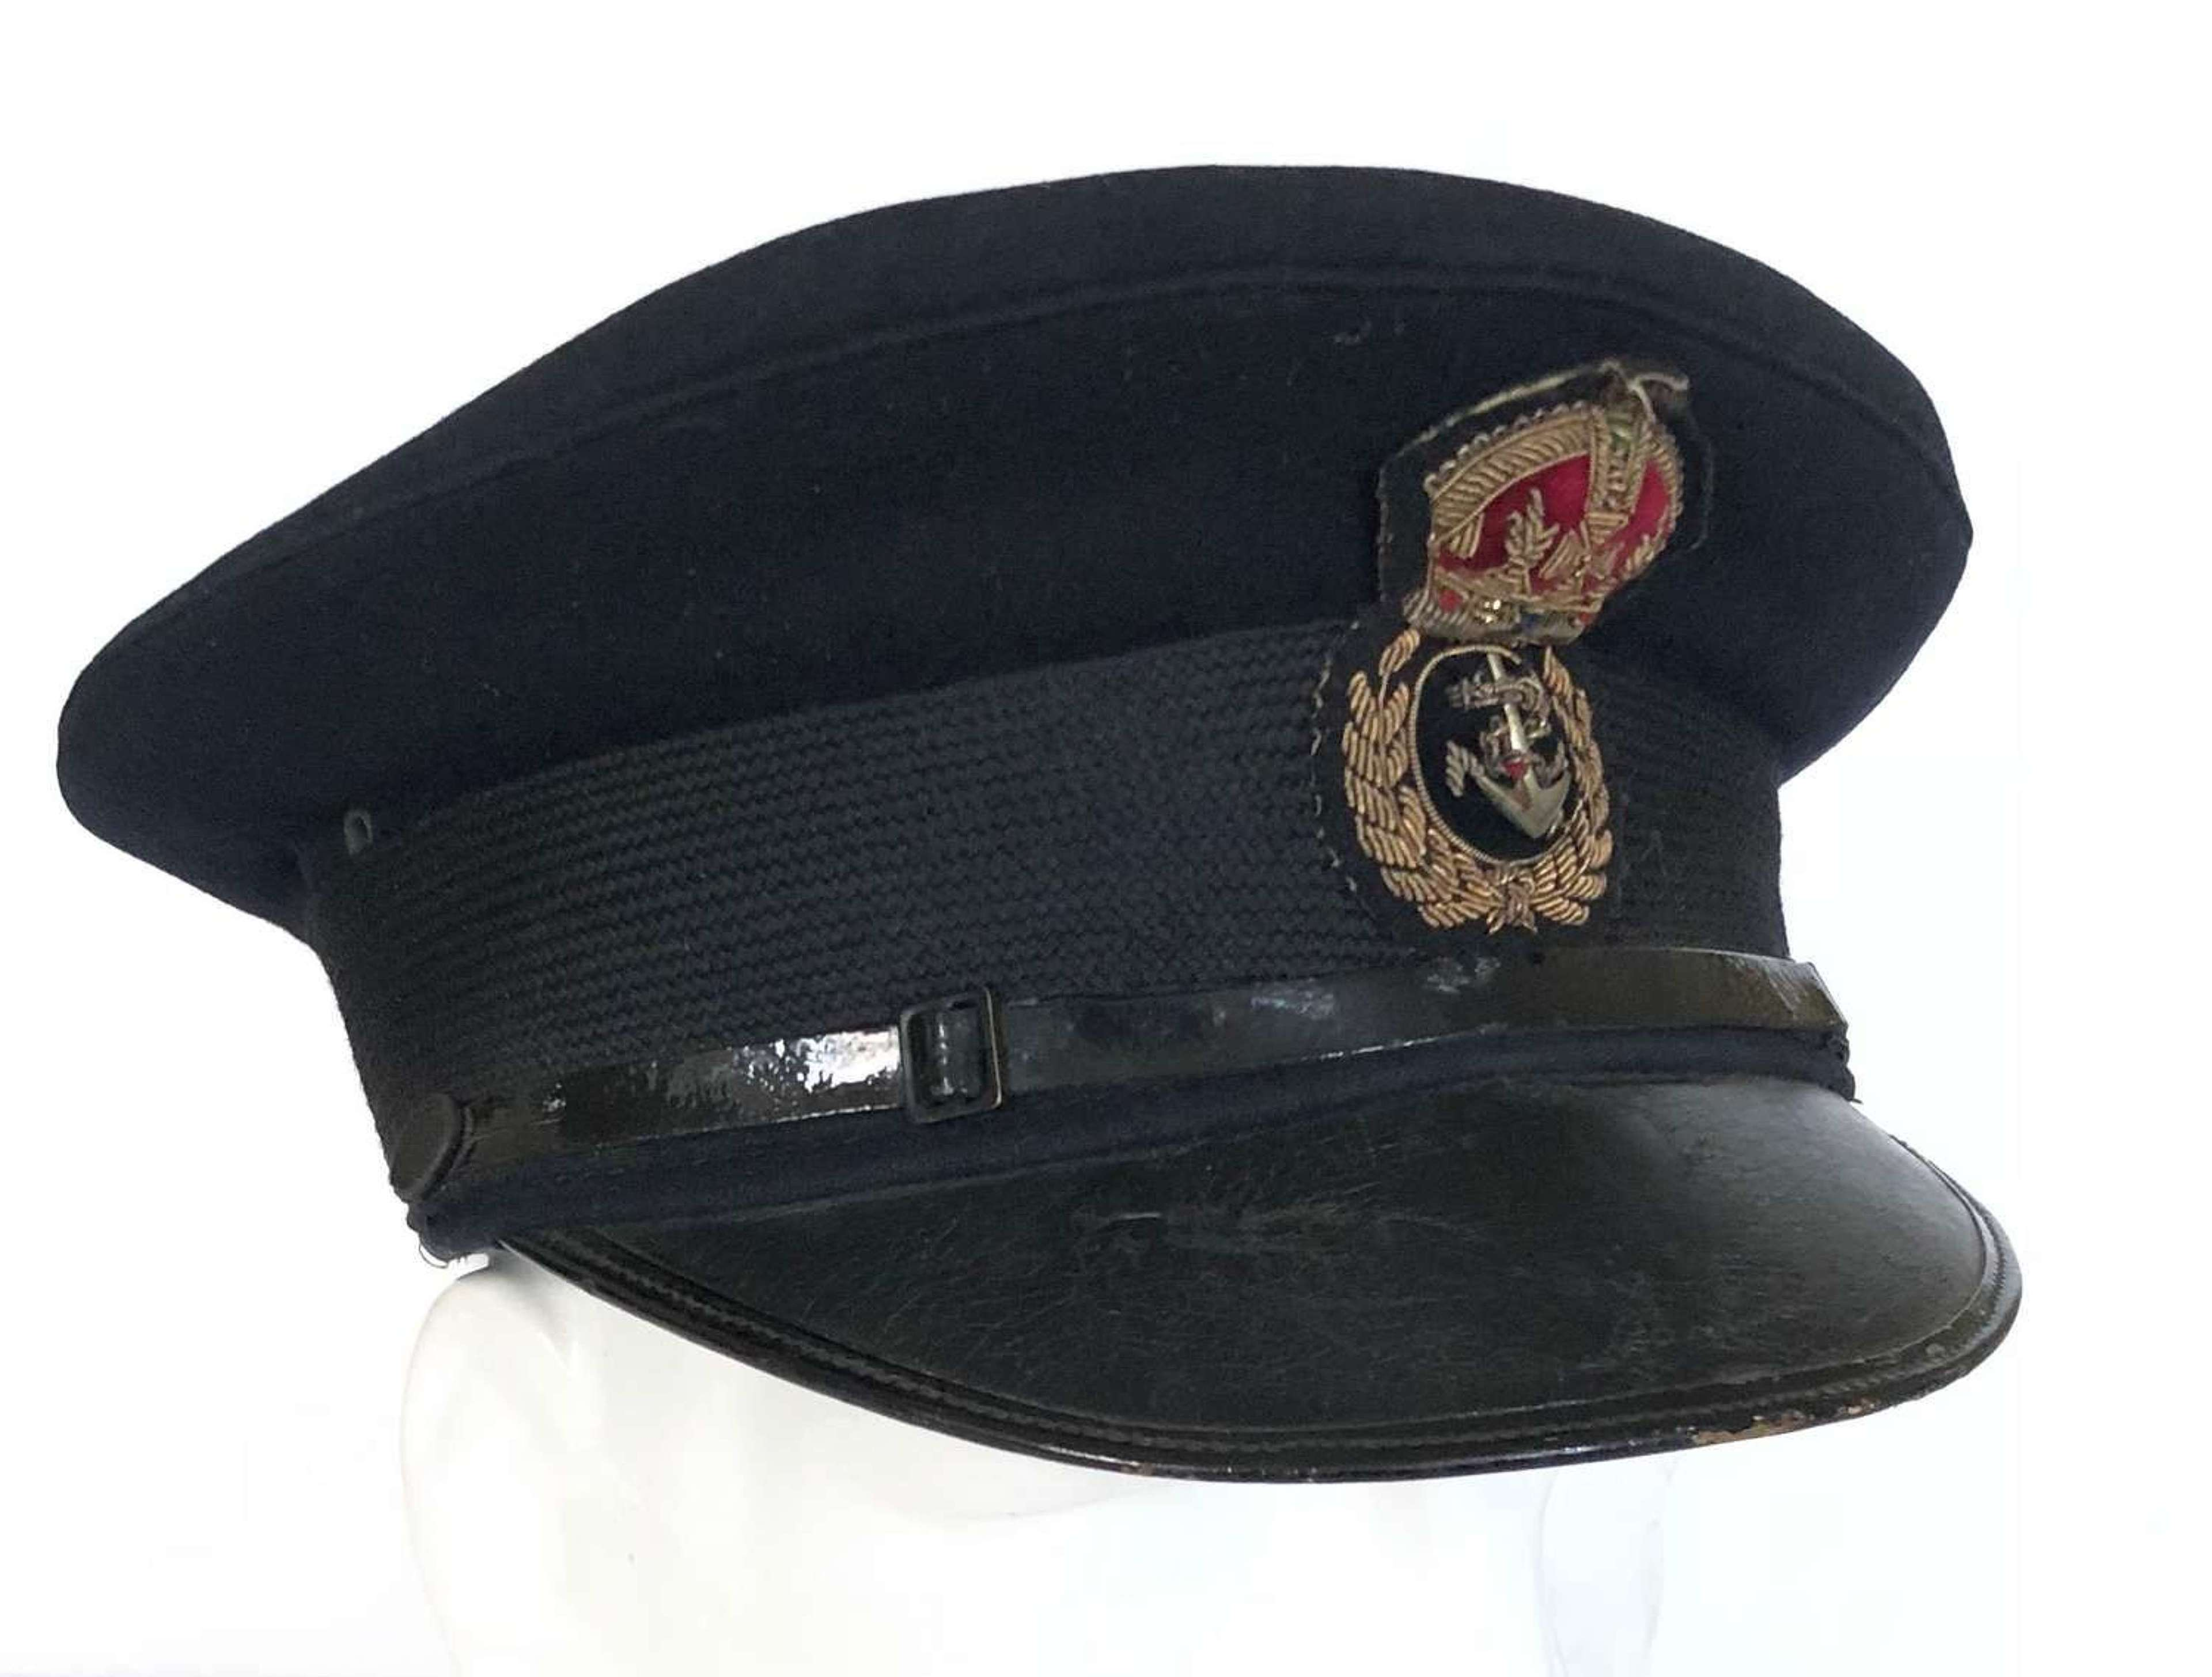 WW2 Period Royal Navy Chief Petty Officer Peaked Forage Cap.